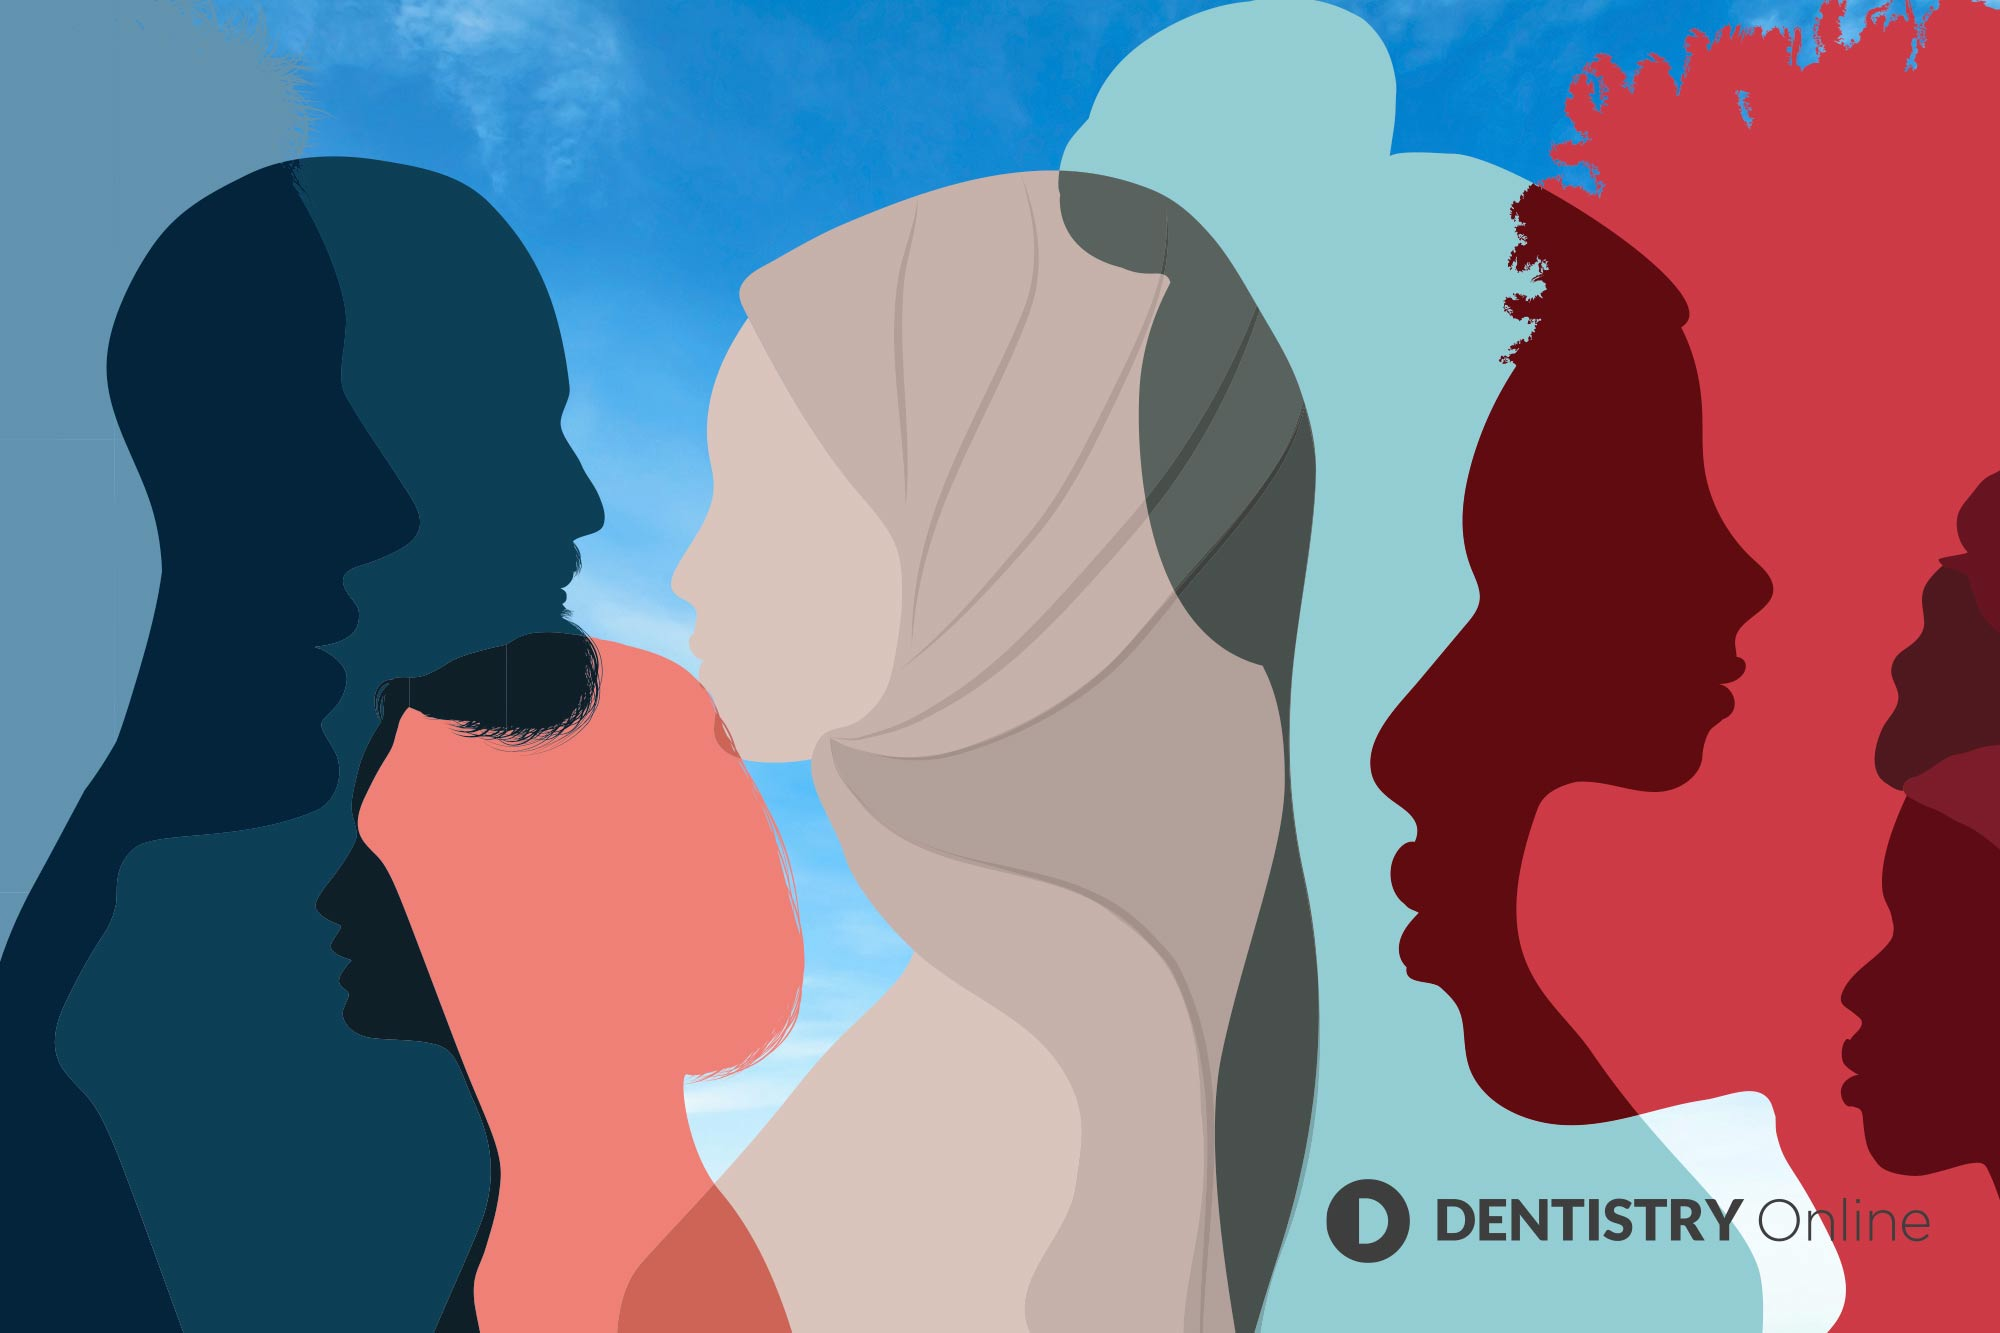 In response to the growing awareness around issues of discrimination and diversity, the OCDO created the Diversity in Dentistry Action Group (DDAG)